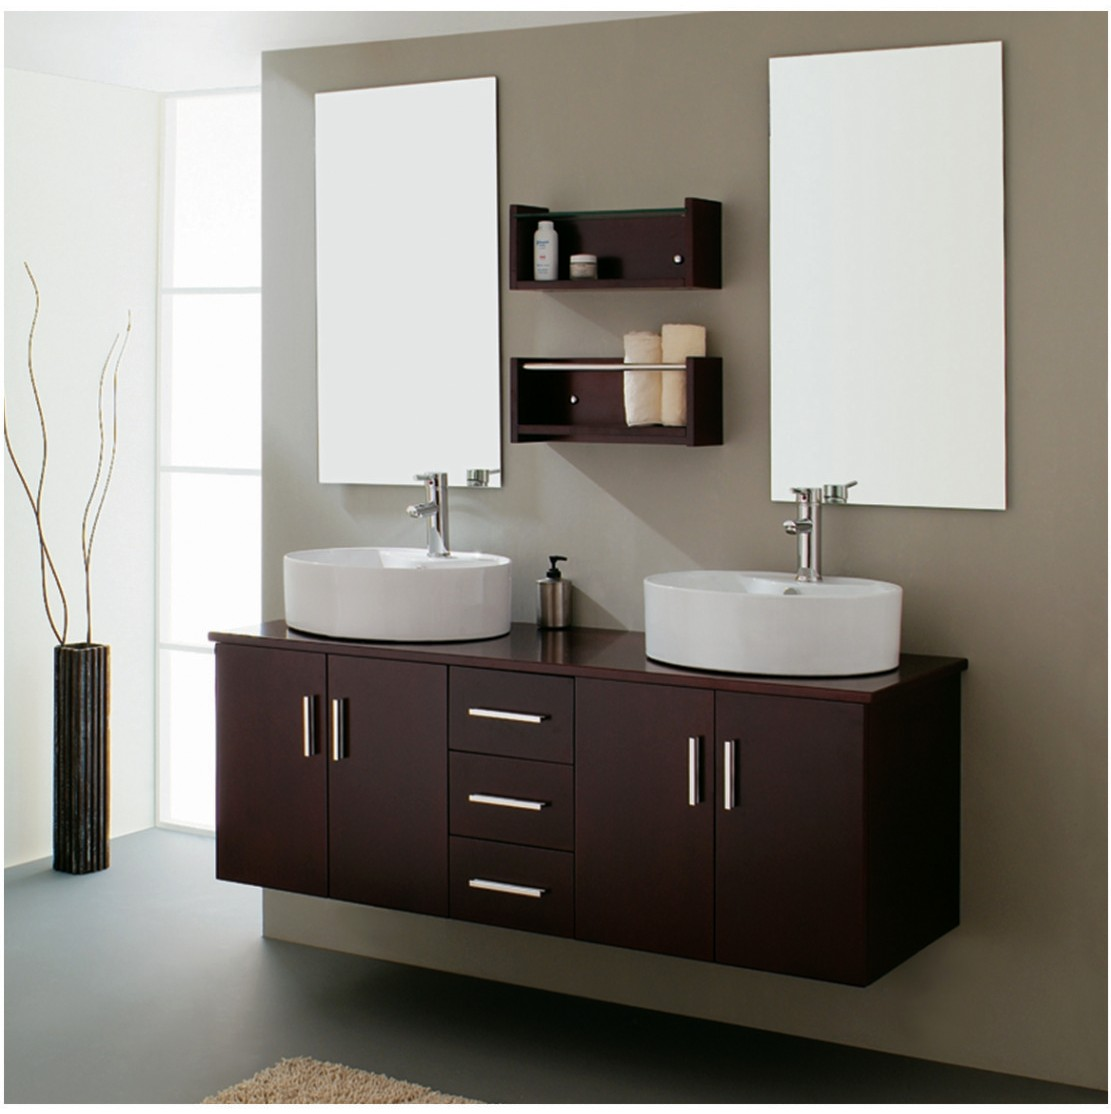 Modern bathroom double sink home decorating ideas - Designer sink image ...